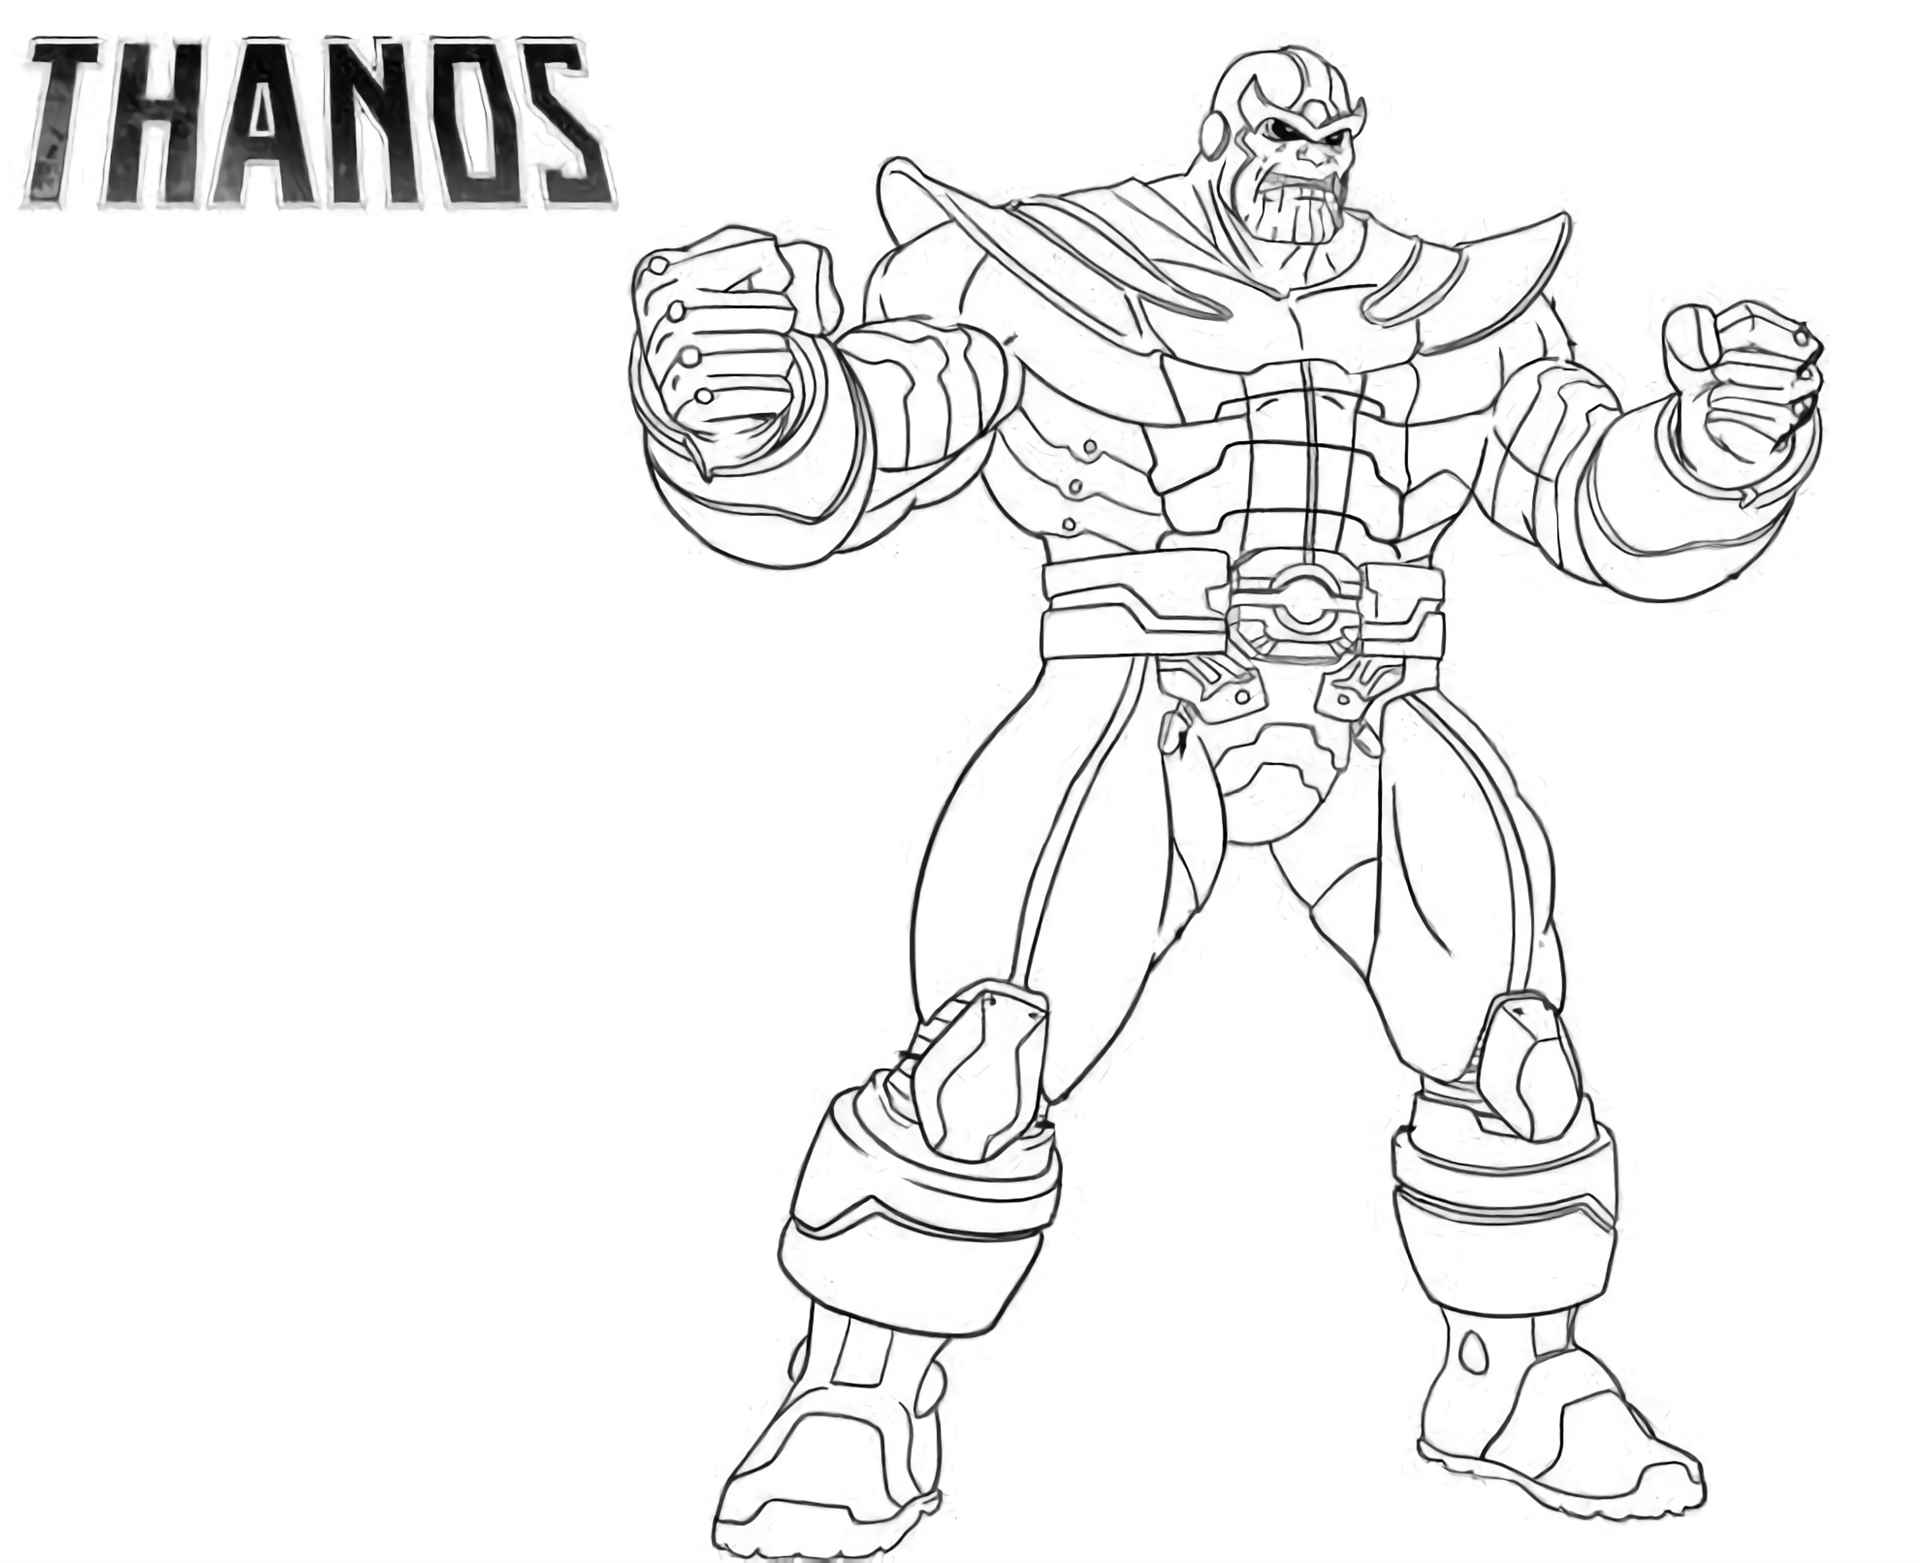 Coloring Page Of The Thanos Skin From The Game Fortnite